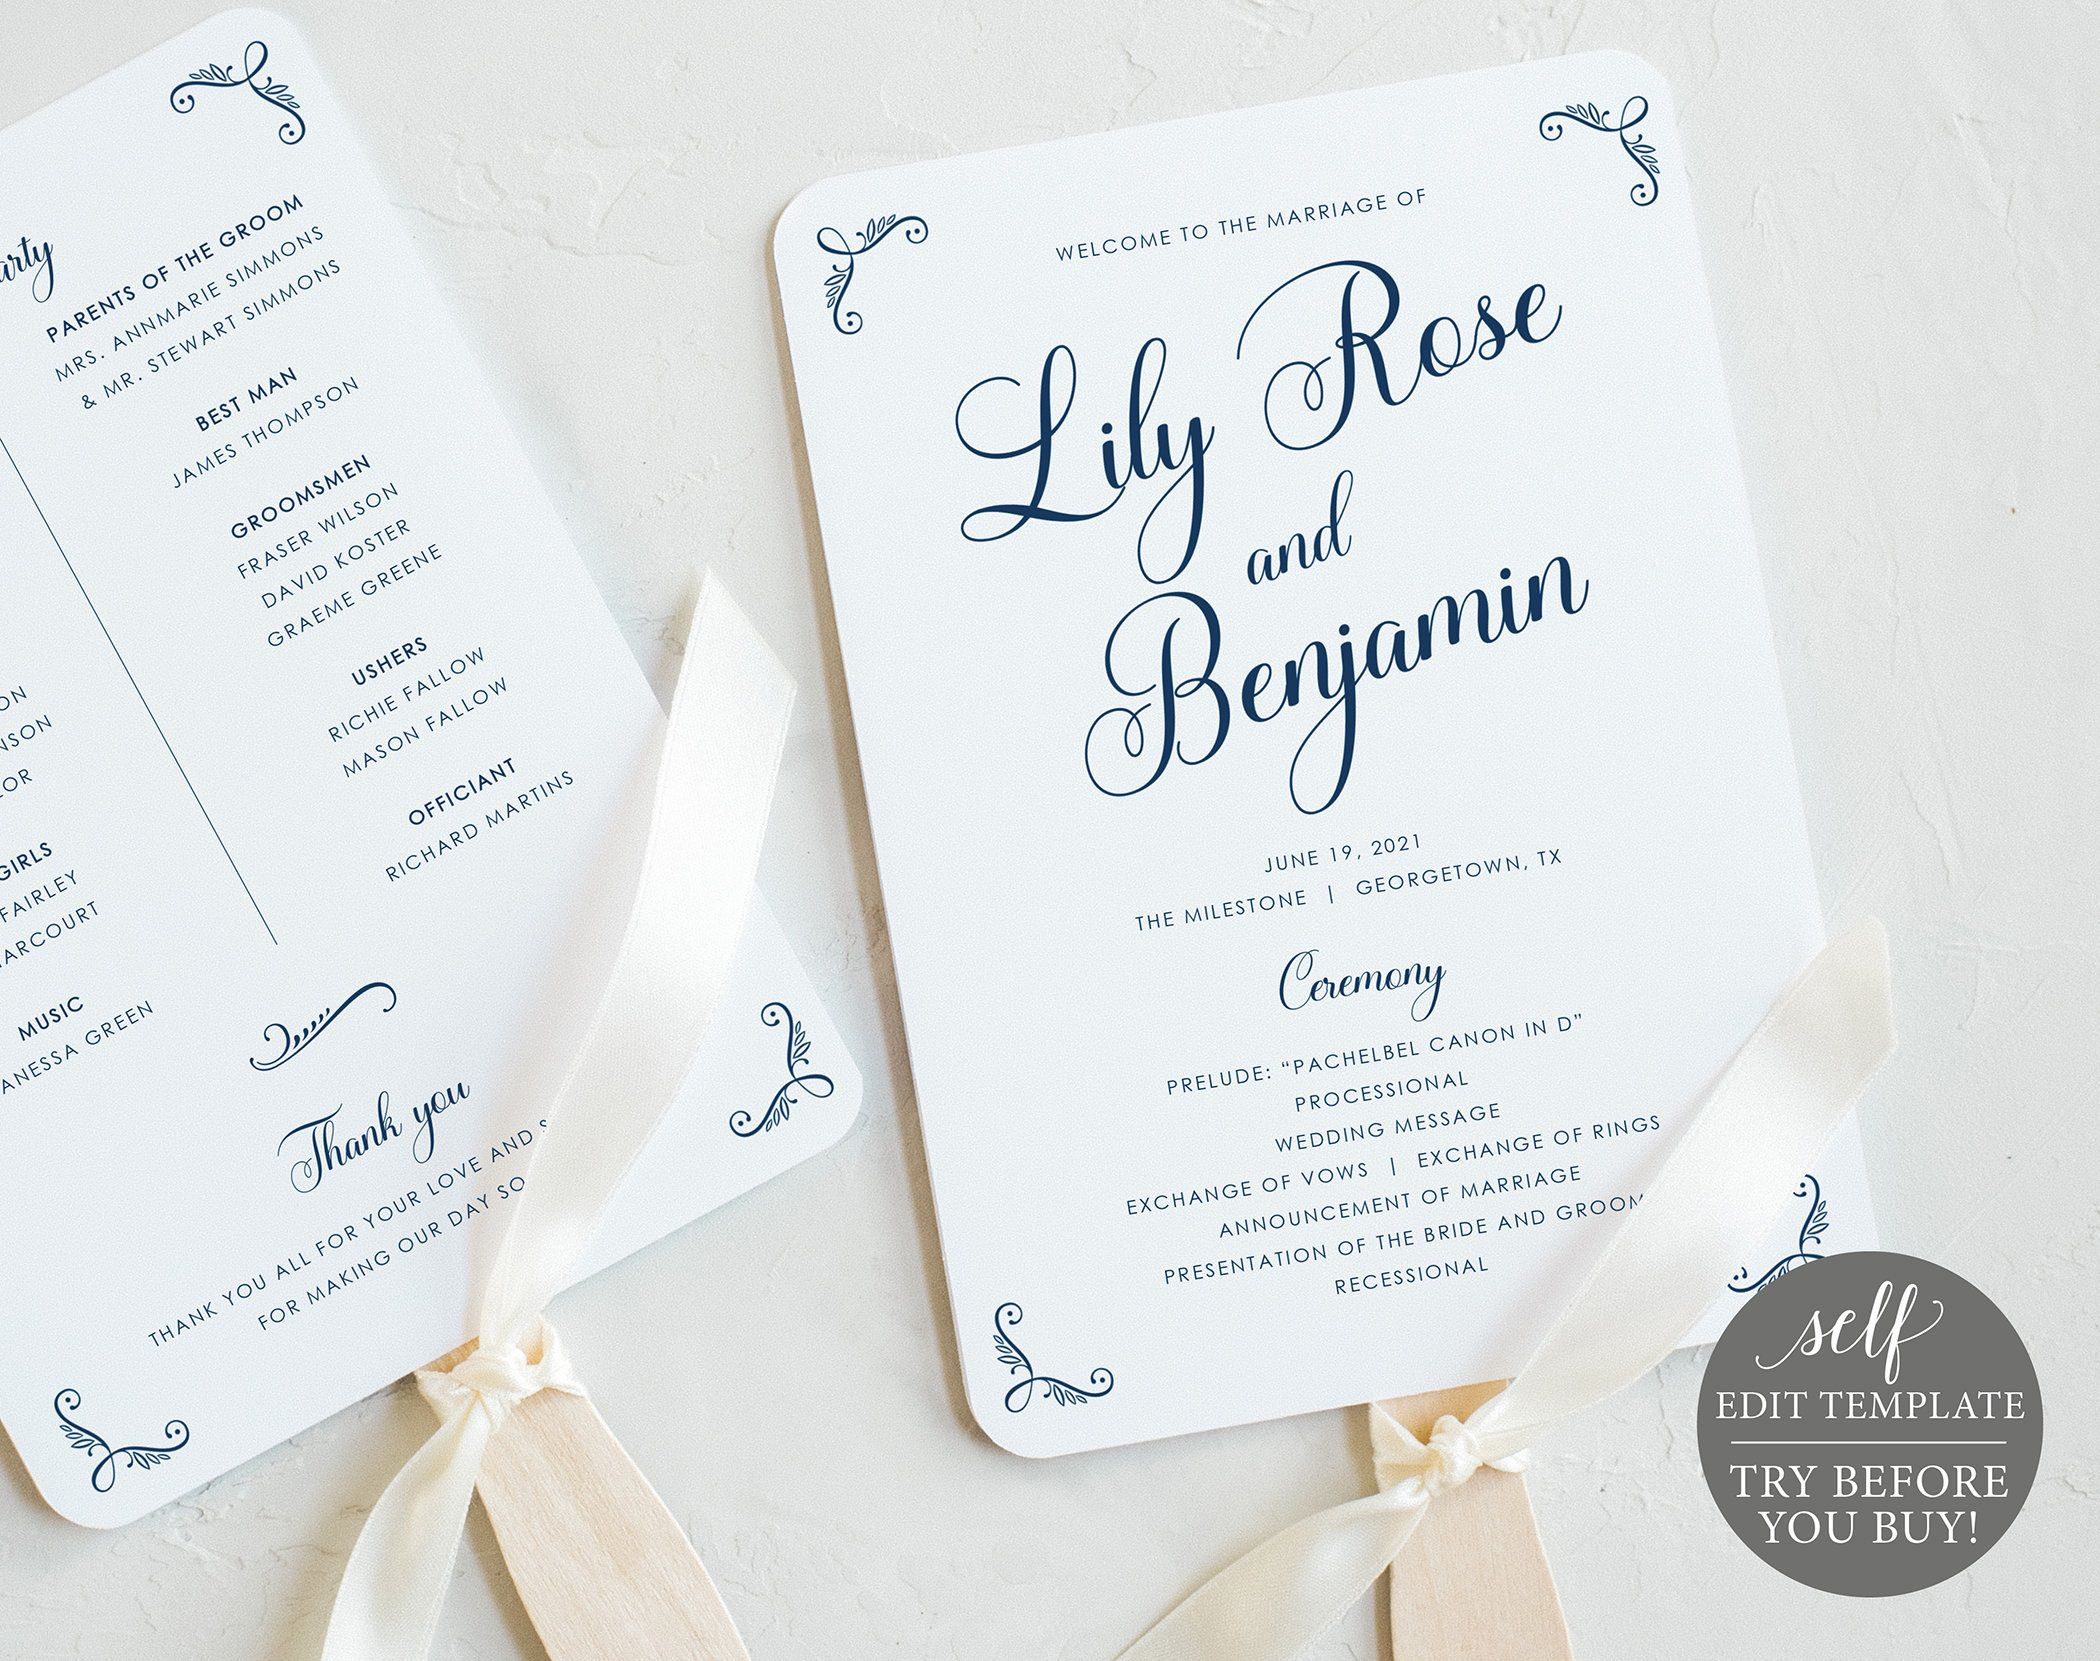 006 Imposing Wedding Program Fan Template Inspiration  Free Word Paddle Downloadable That Can Be PrintedFull